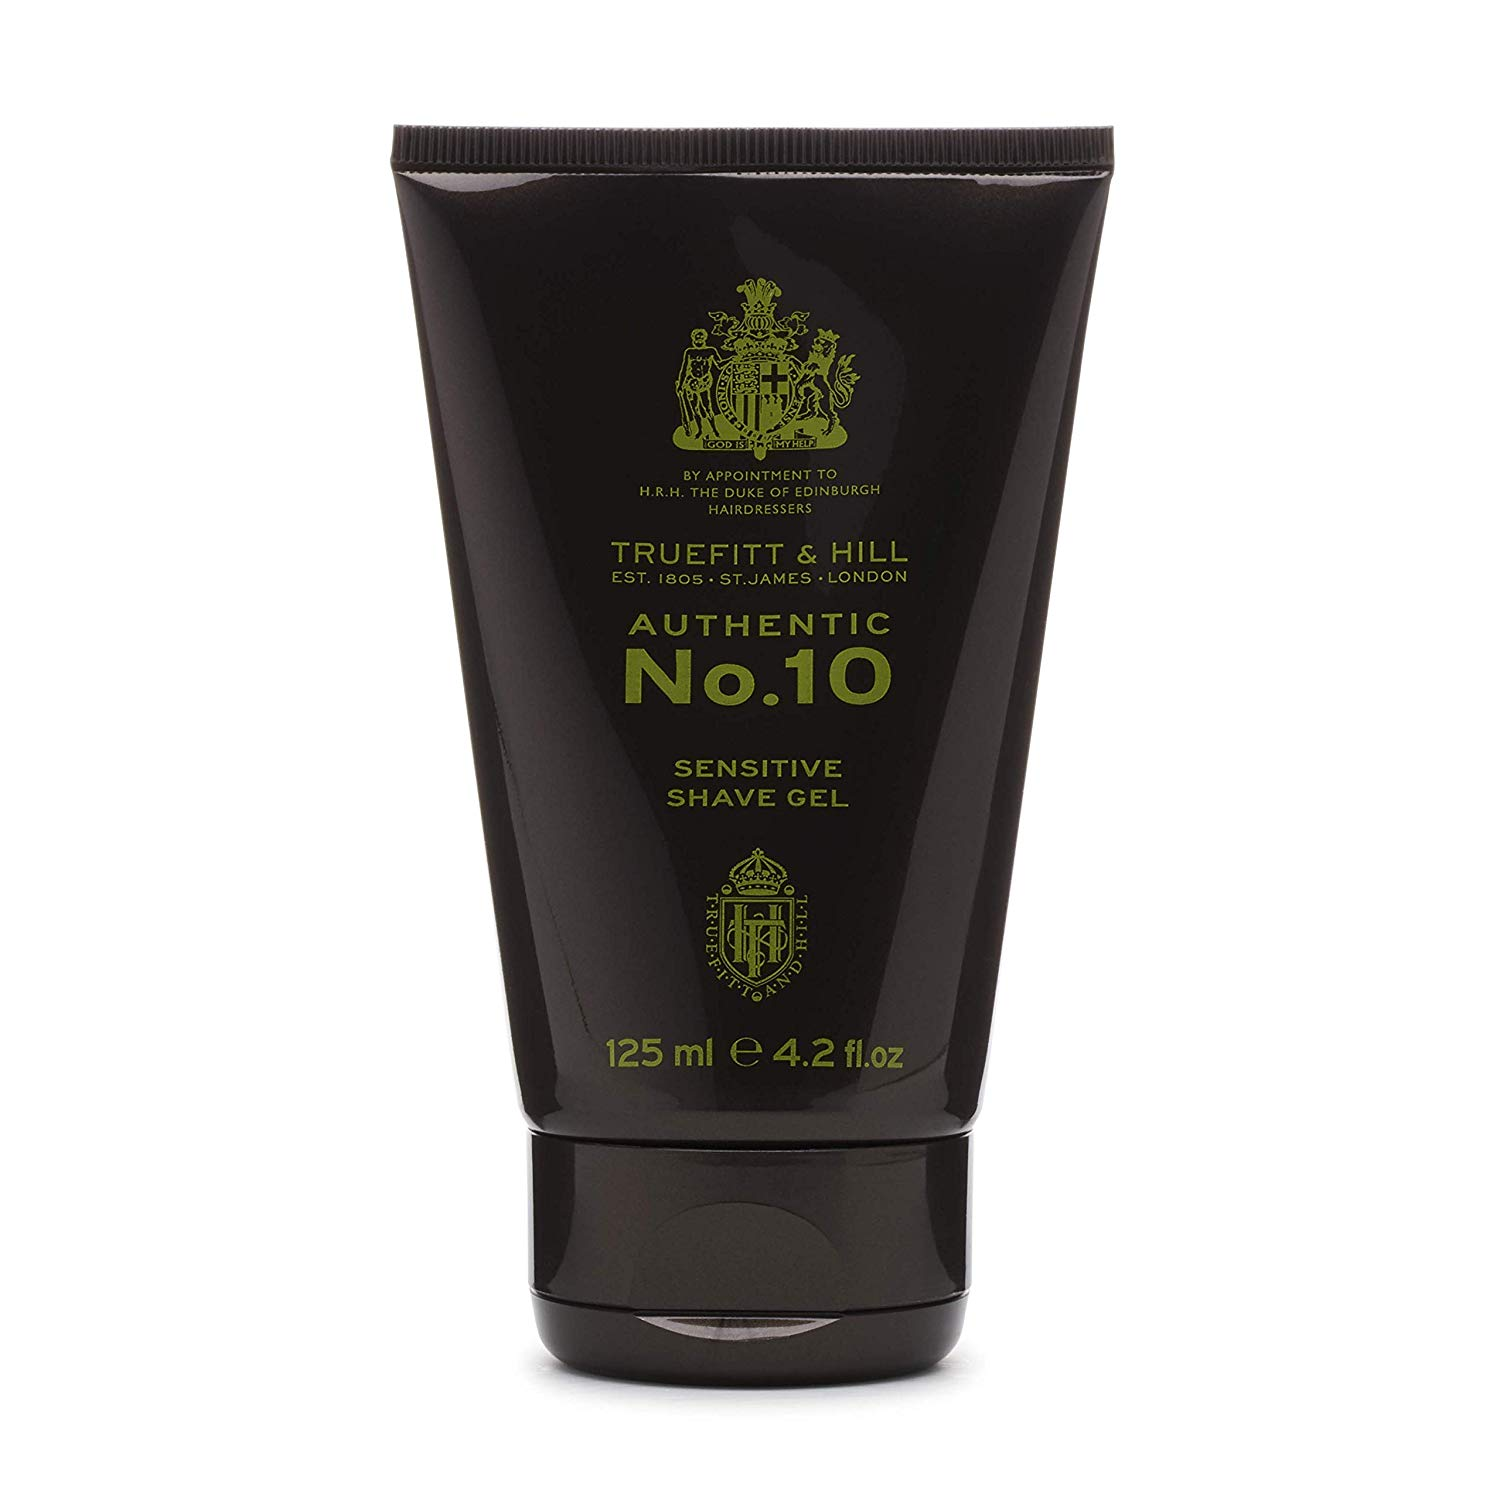 Truefitt and Hill No. 10 Sensitive Shave Gel (From: Amazon)